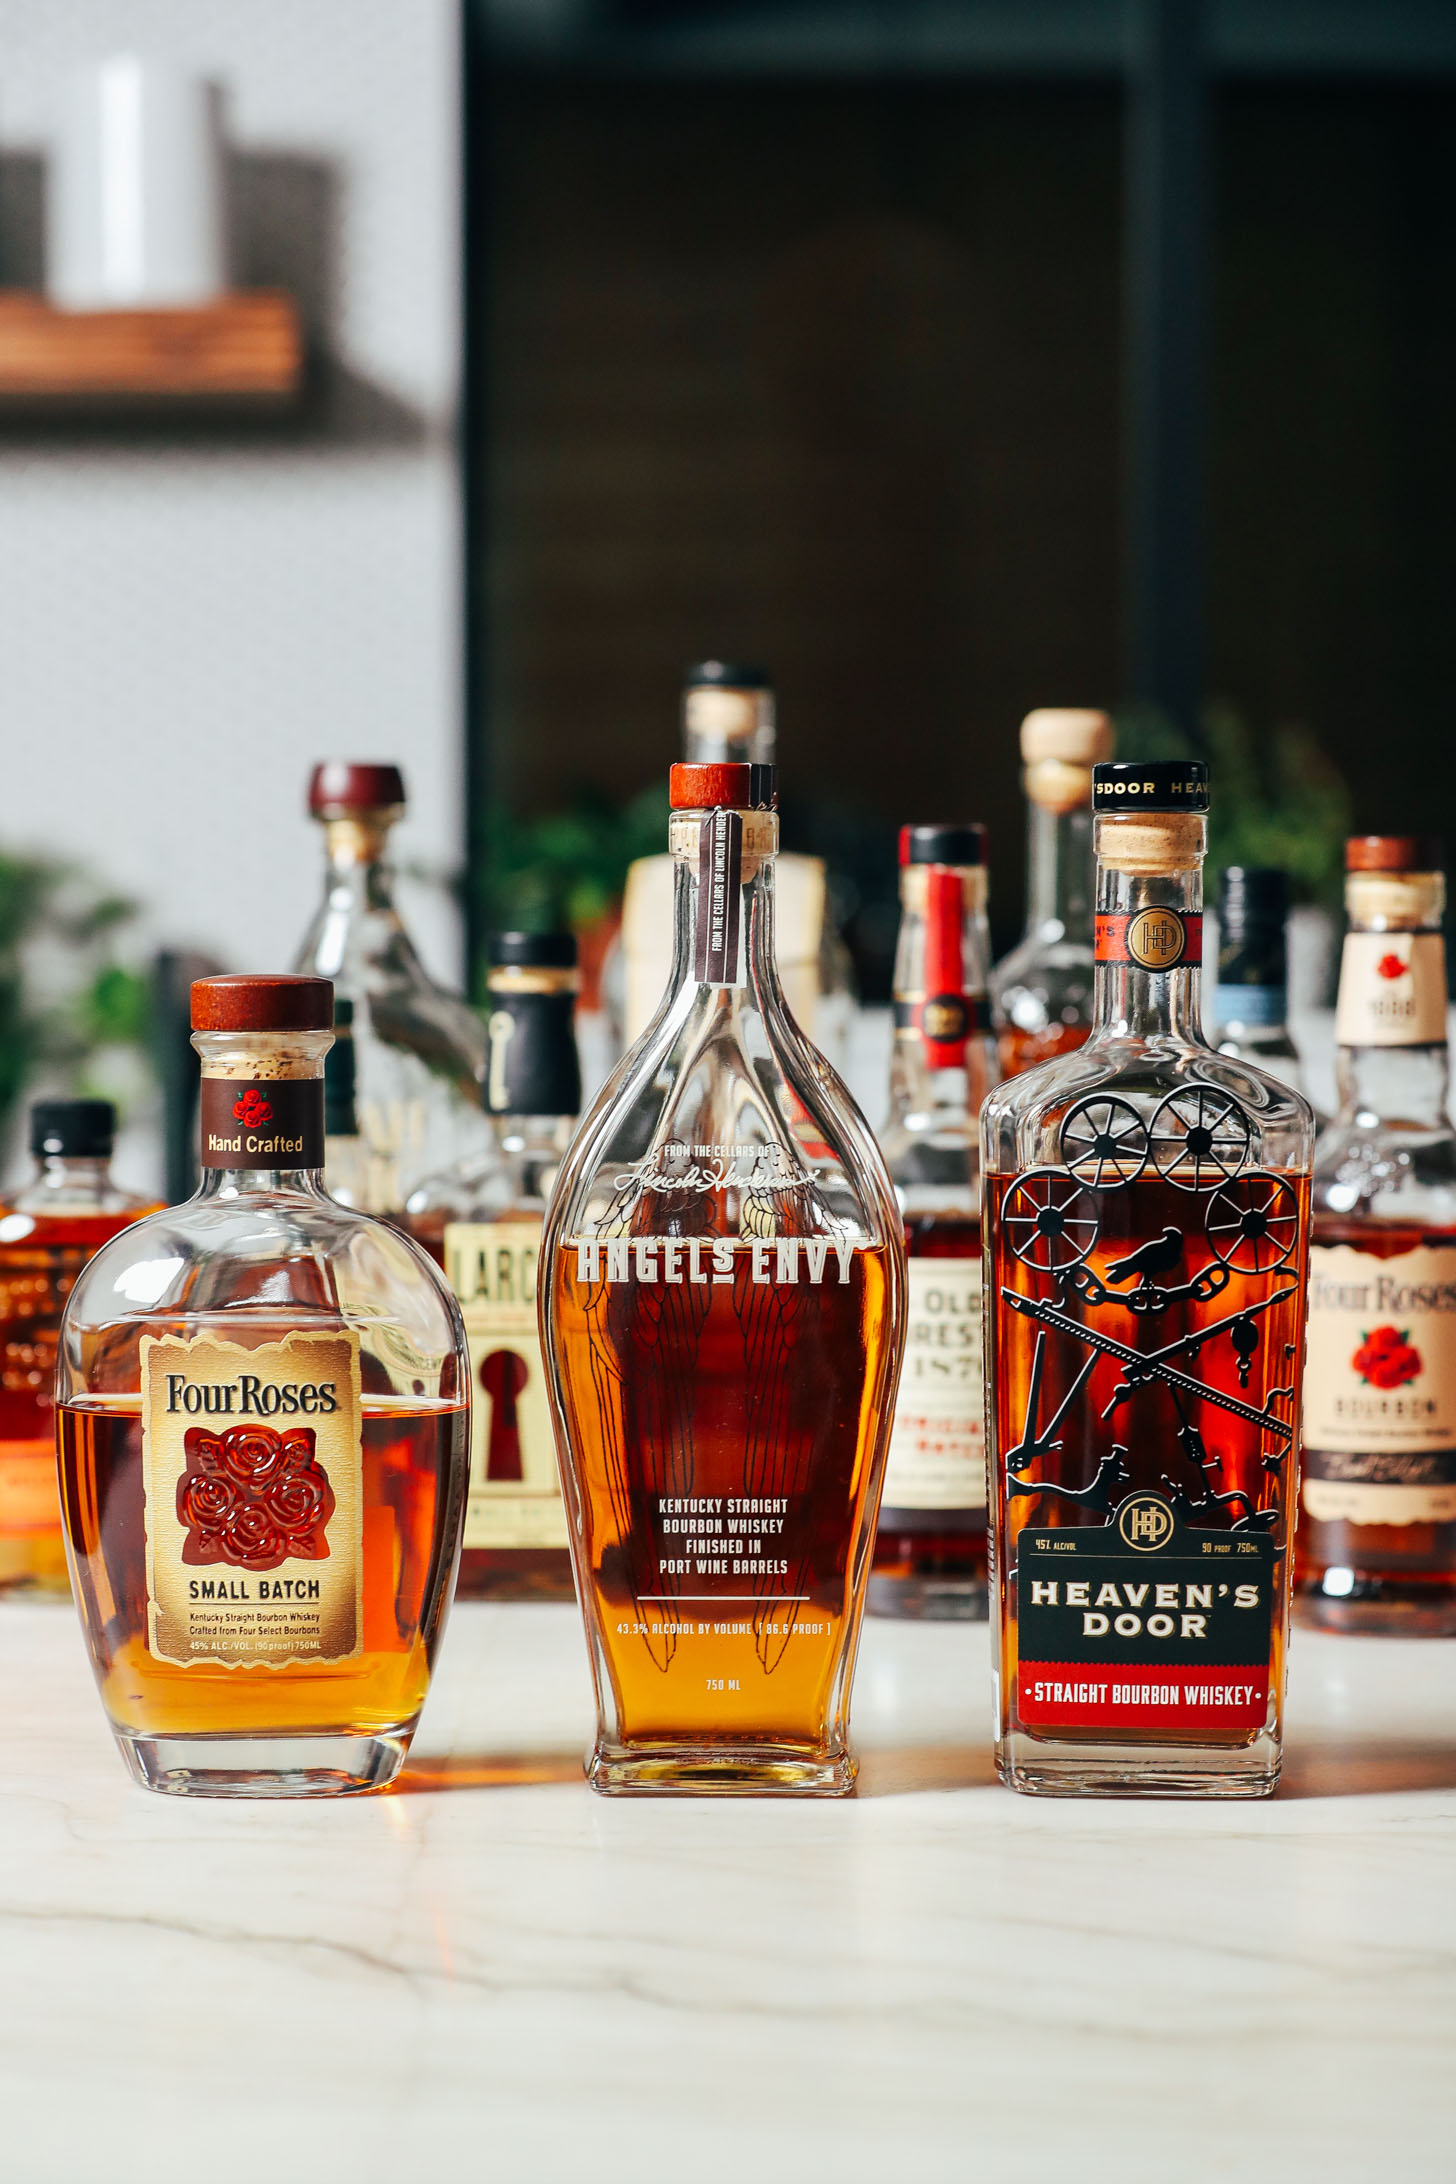 Assortment of bourbon bottles we compared for making an Old Fashioned